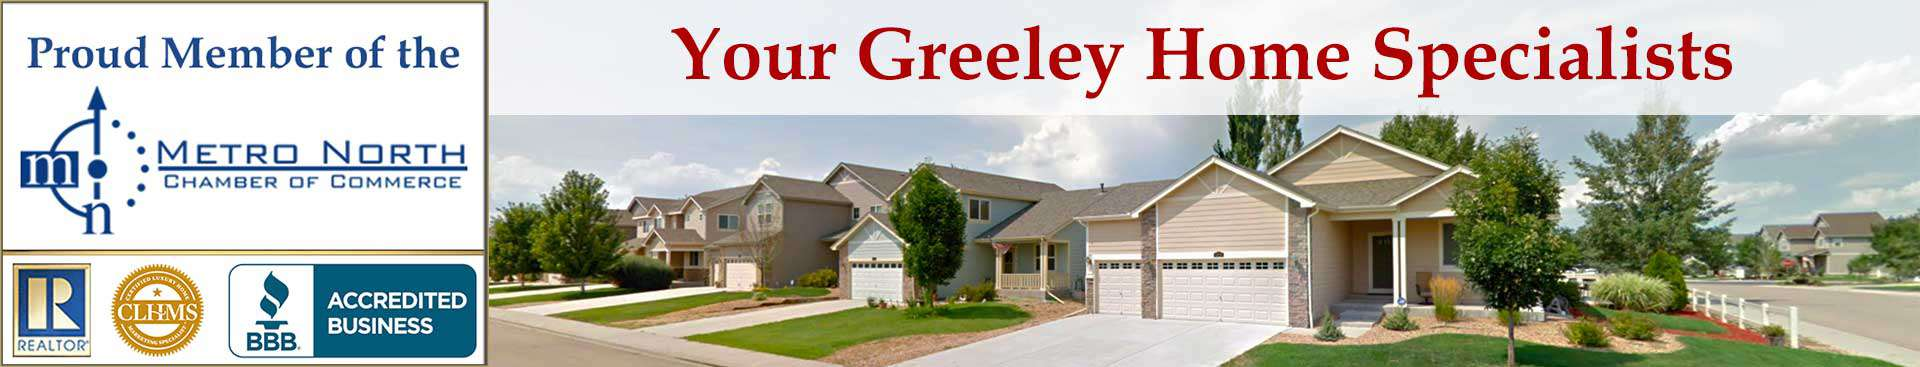 Greeley Accreditations Banner